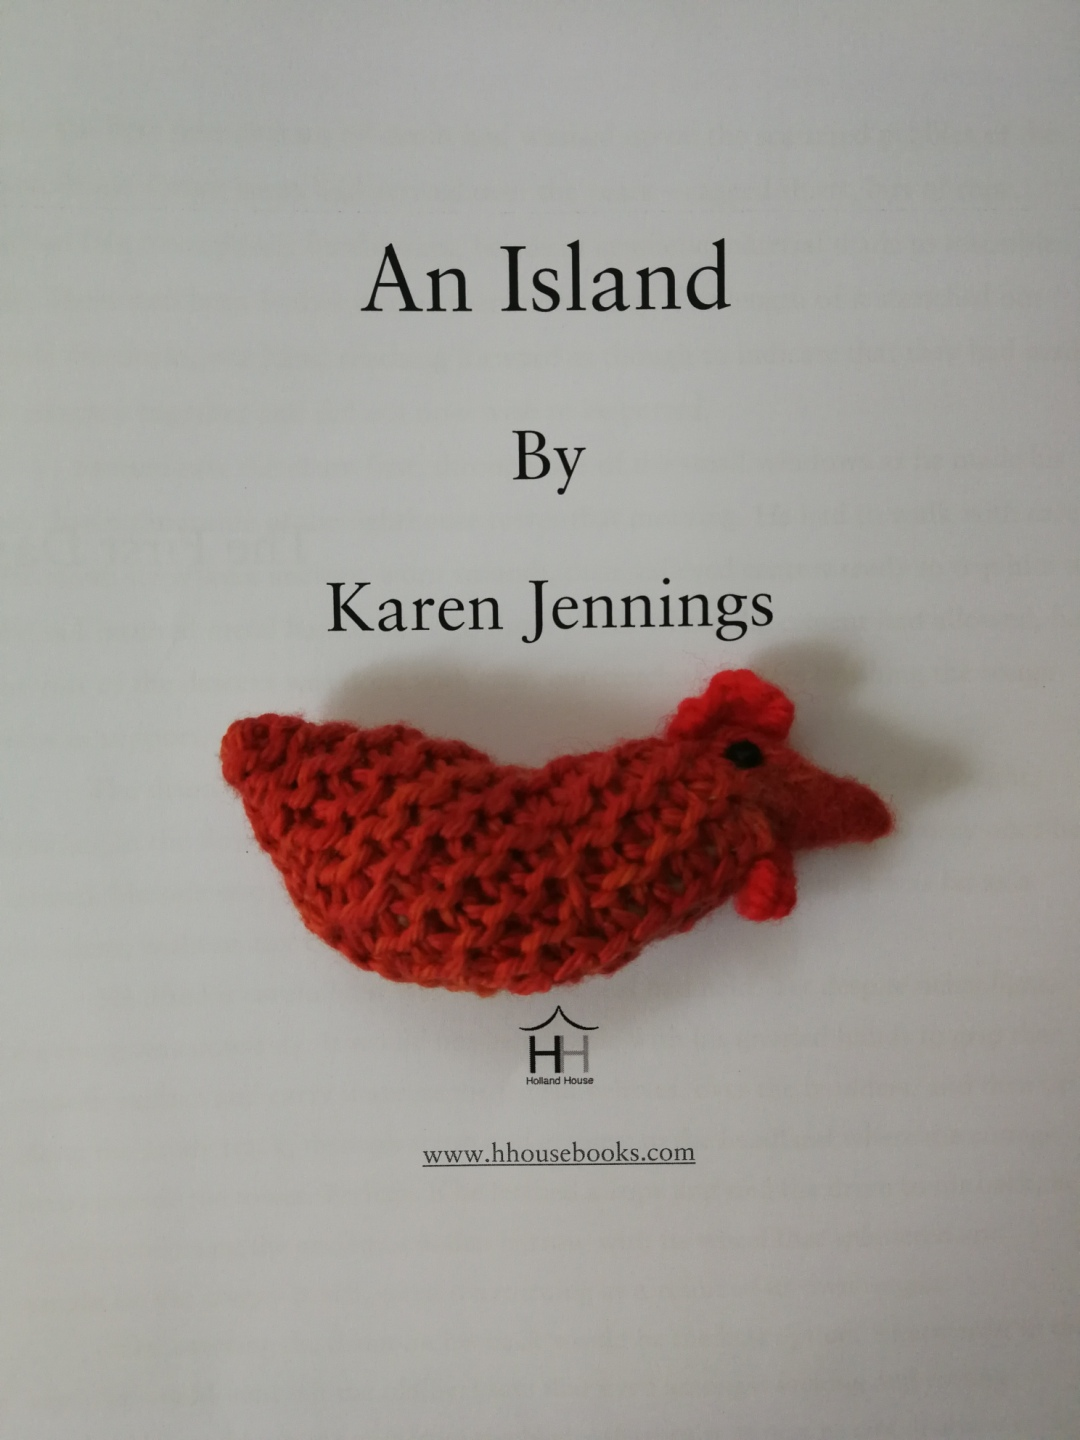 An Island by Karen Jennings